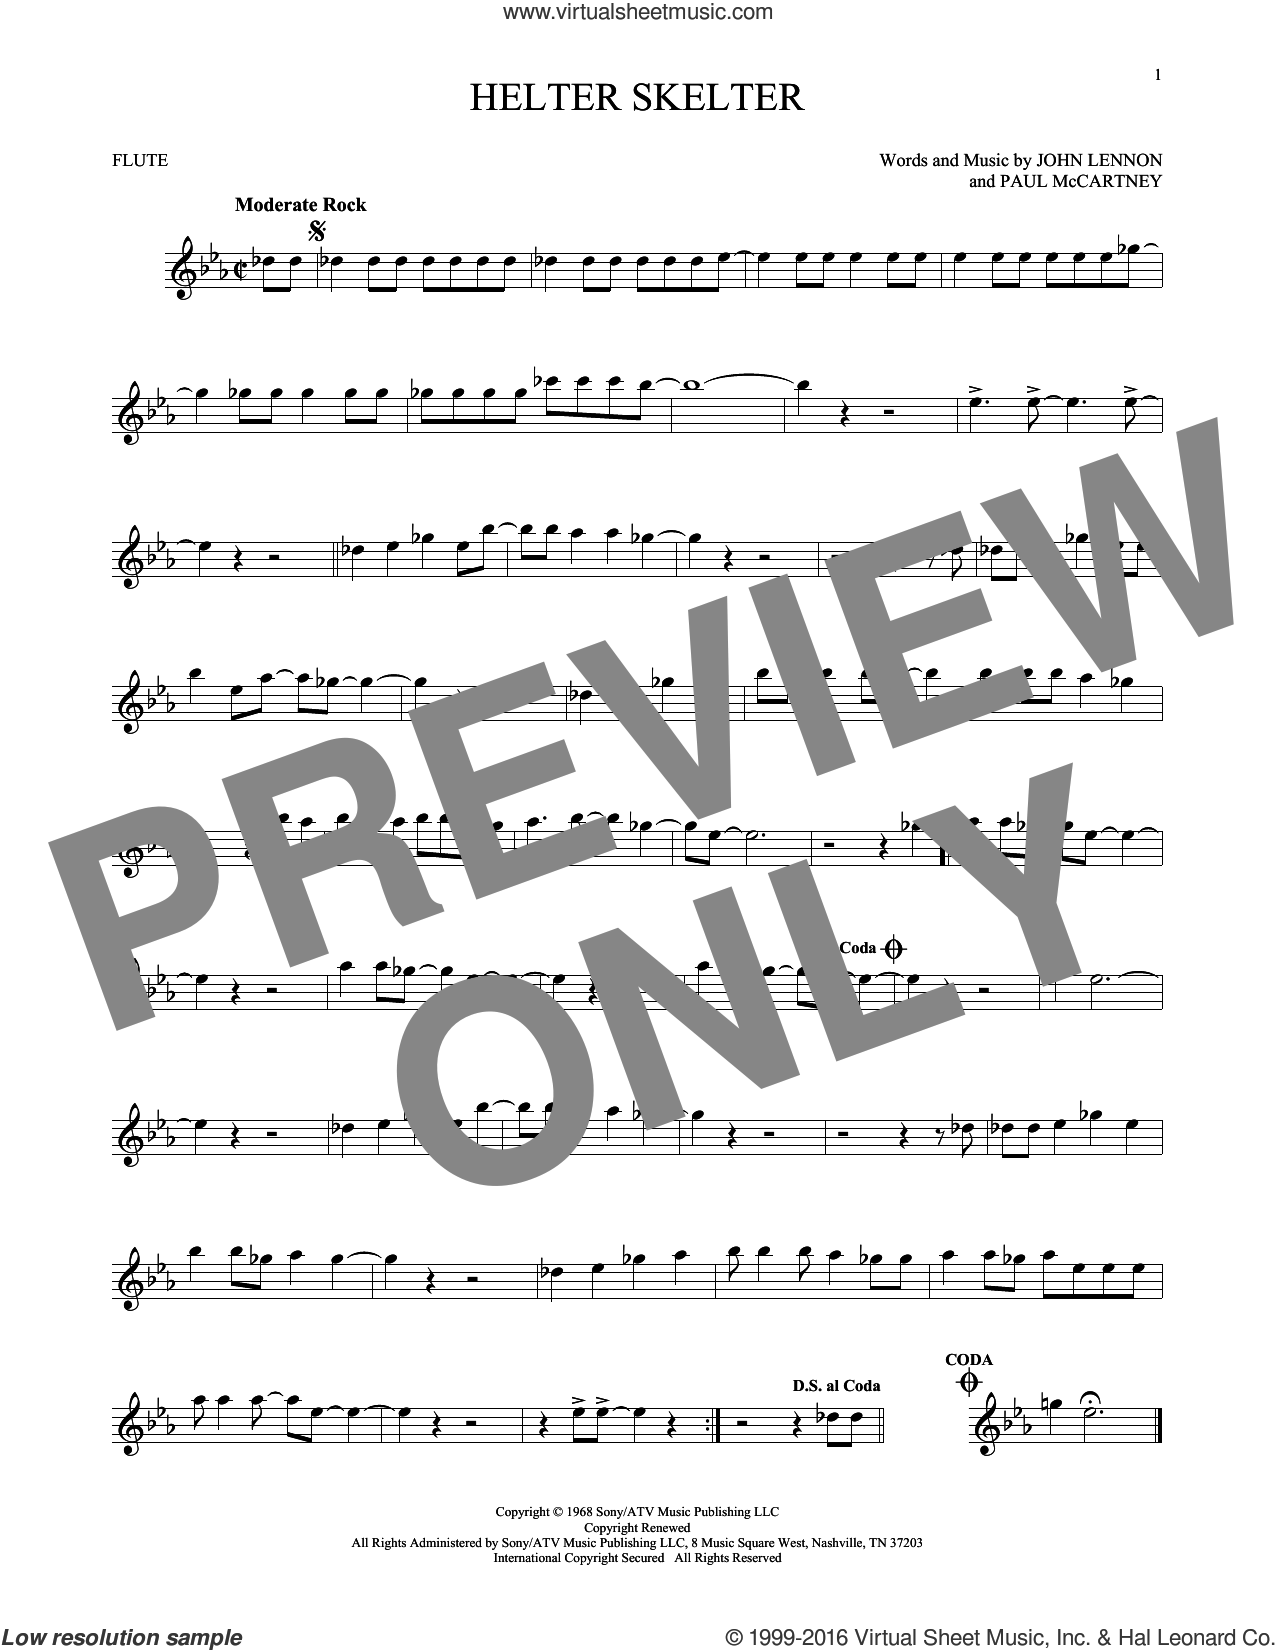 Helter Skelter sheet music for flute solo by The Beatles, John Lennon and Paul McCartney, intermediate skill level